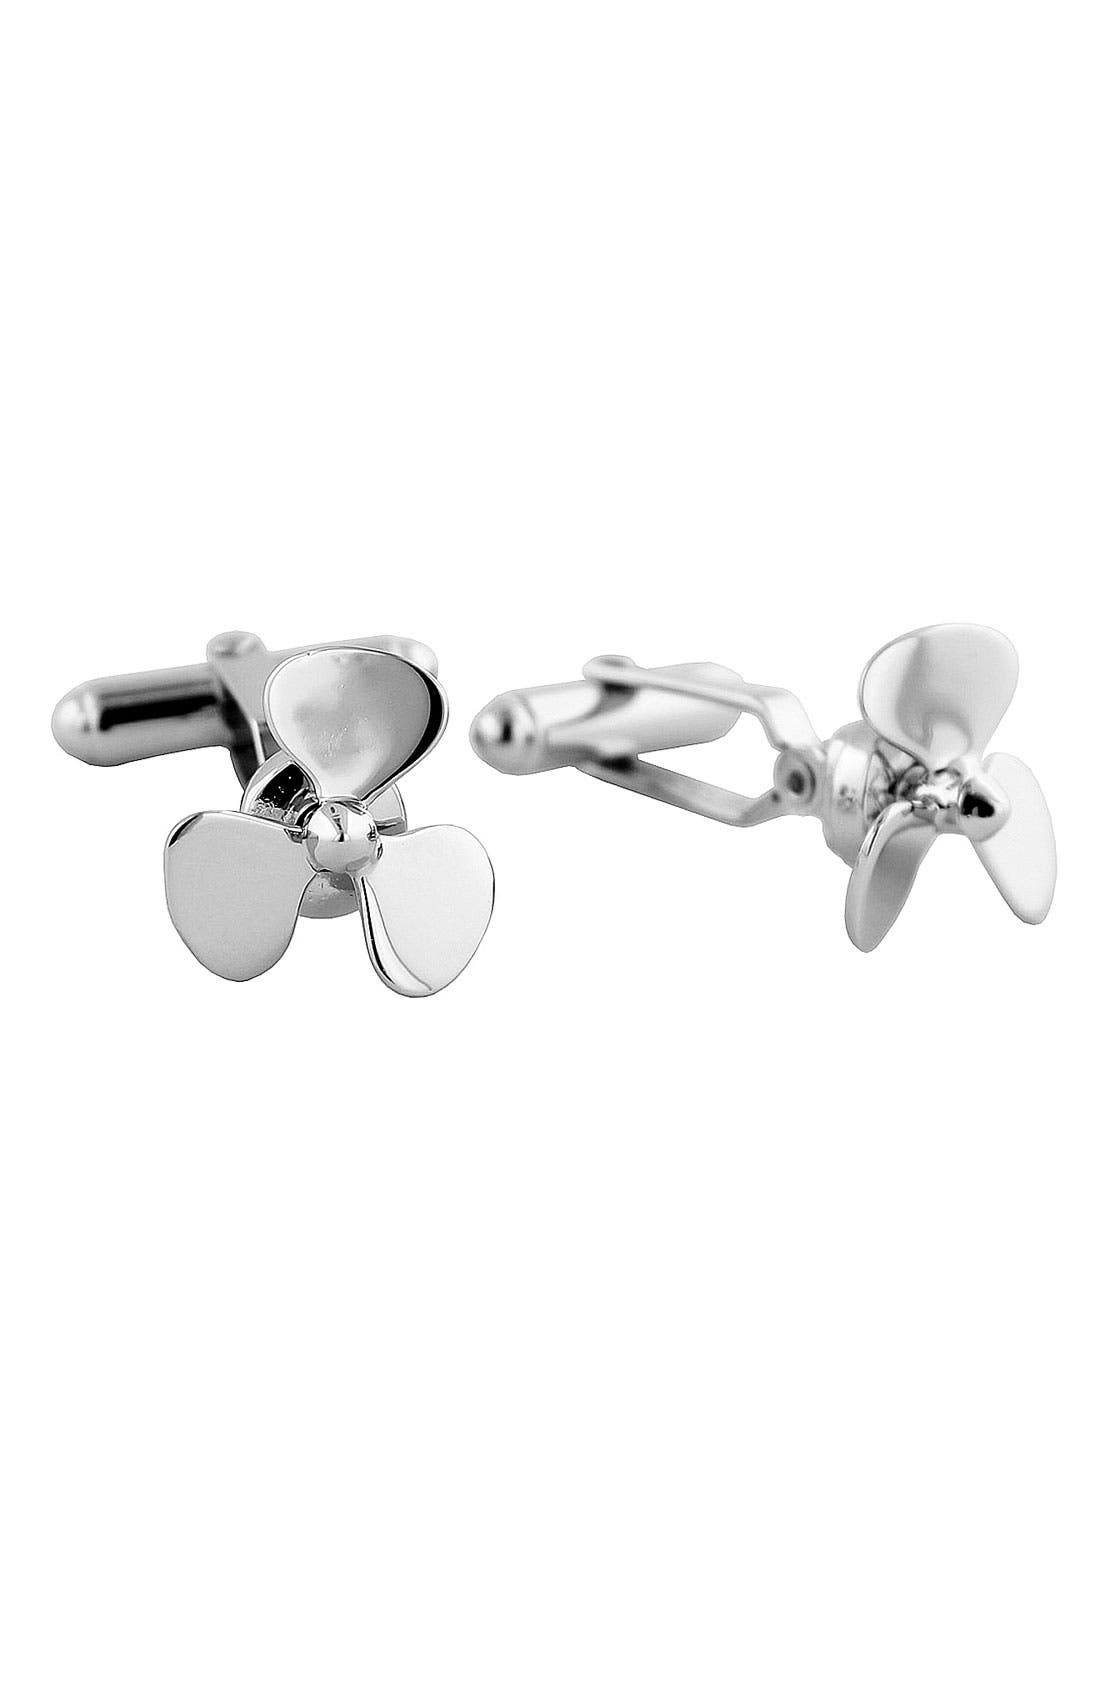 DAVID DONAHUE Propeller Cuff Links